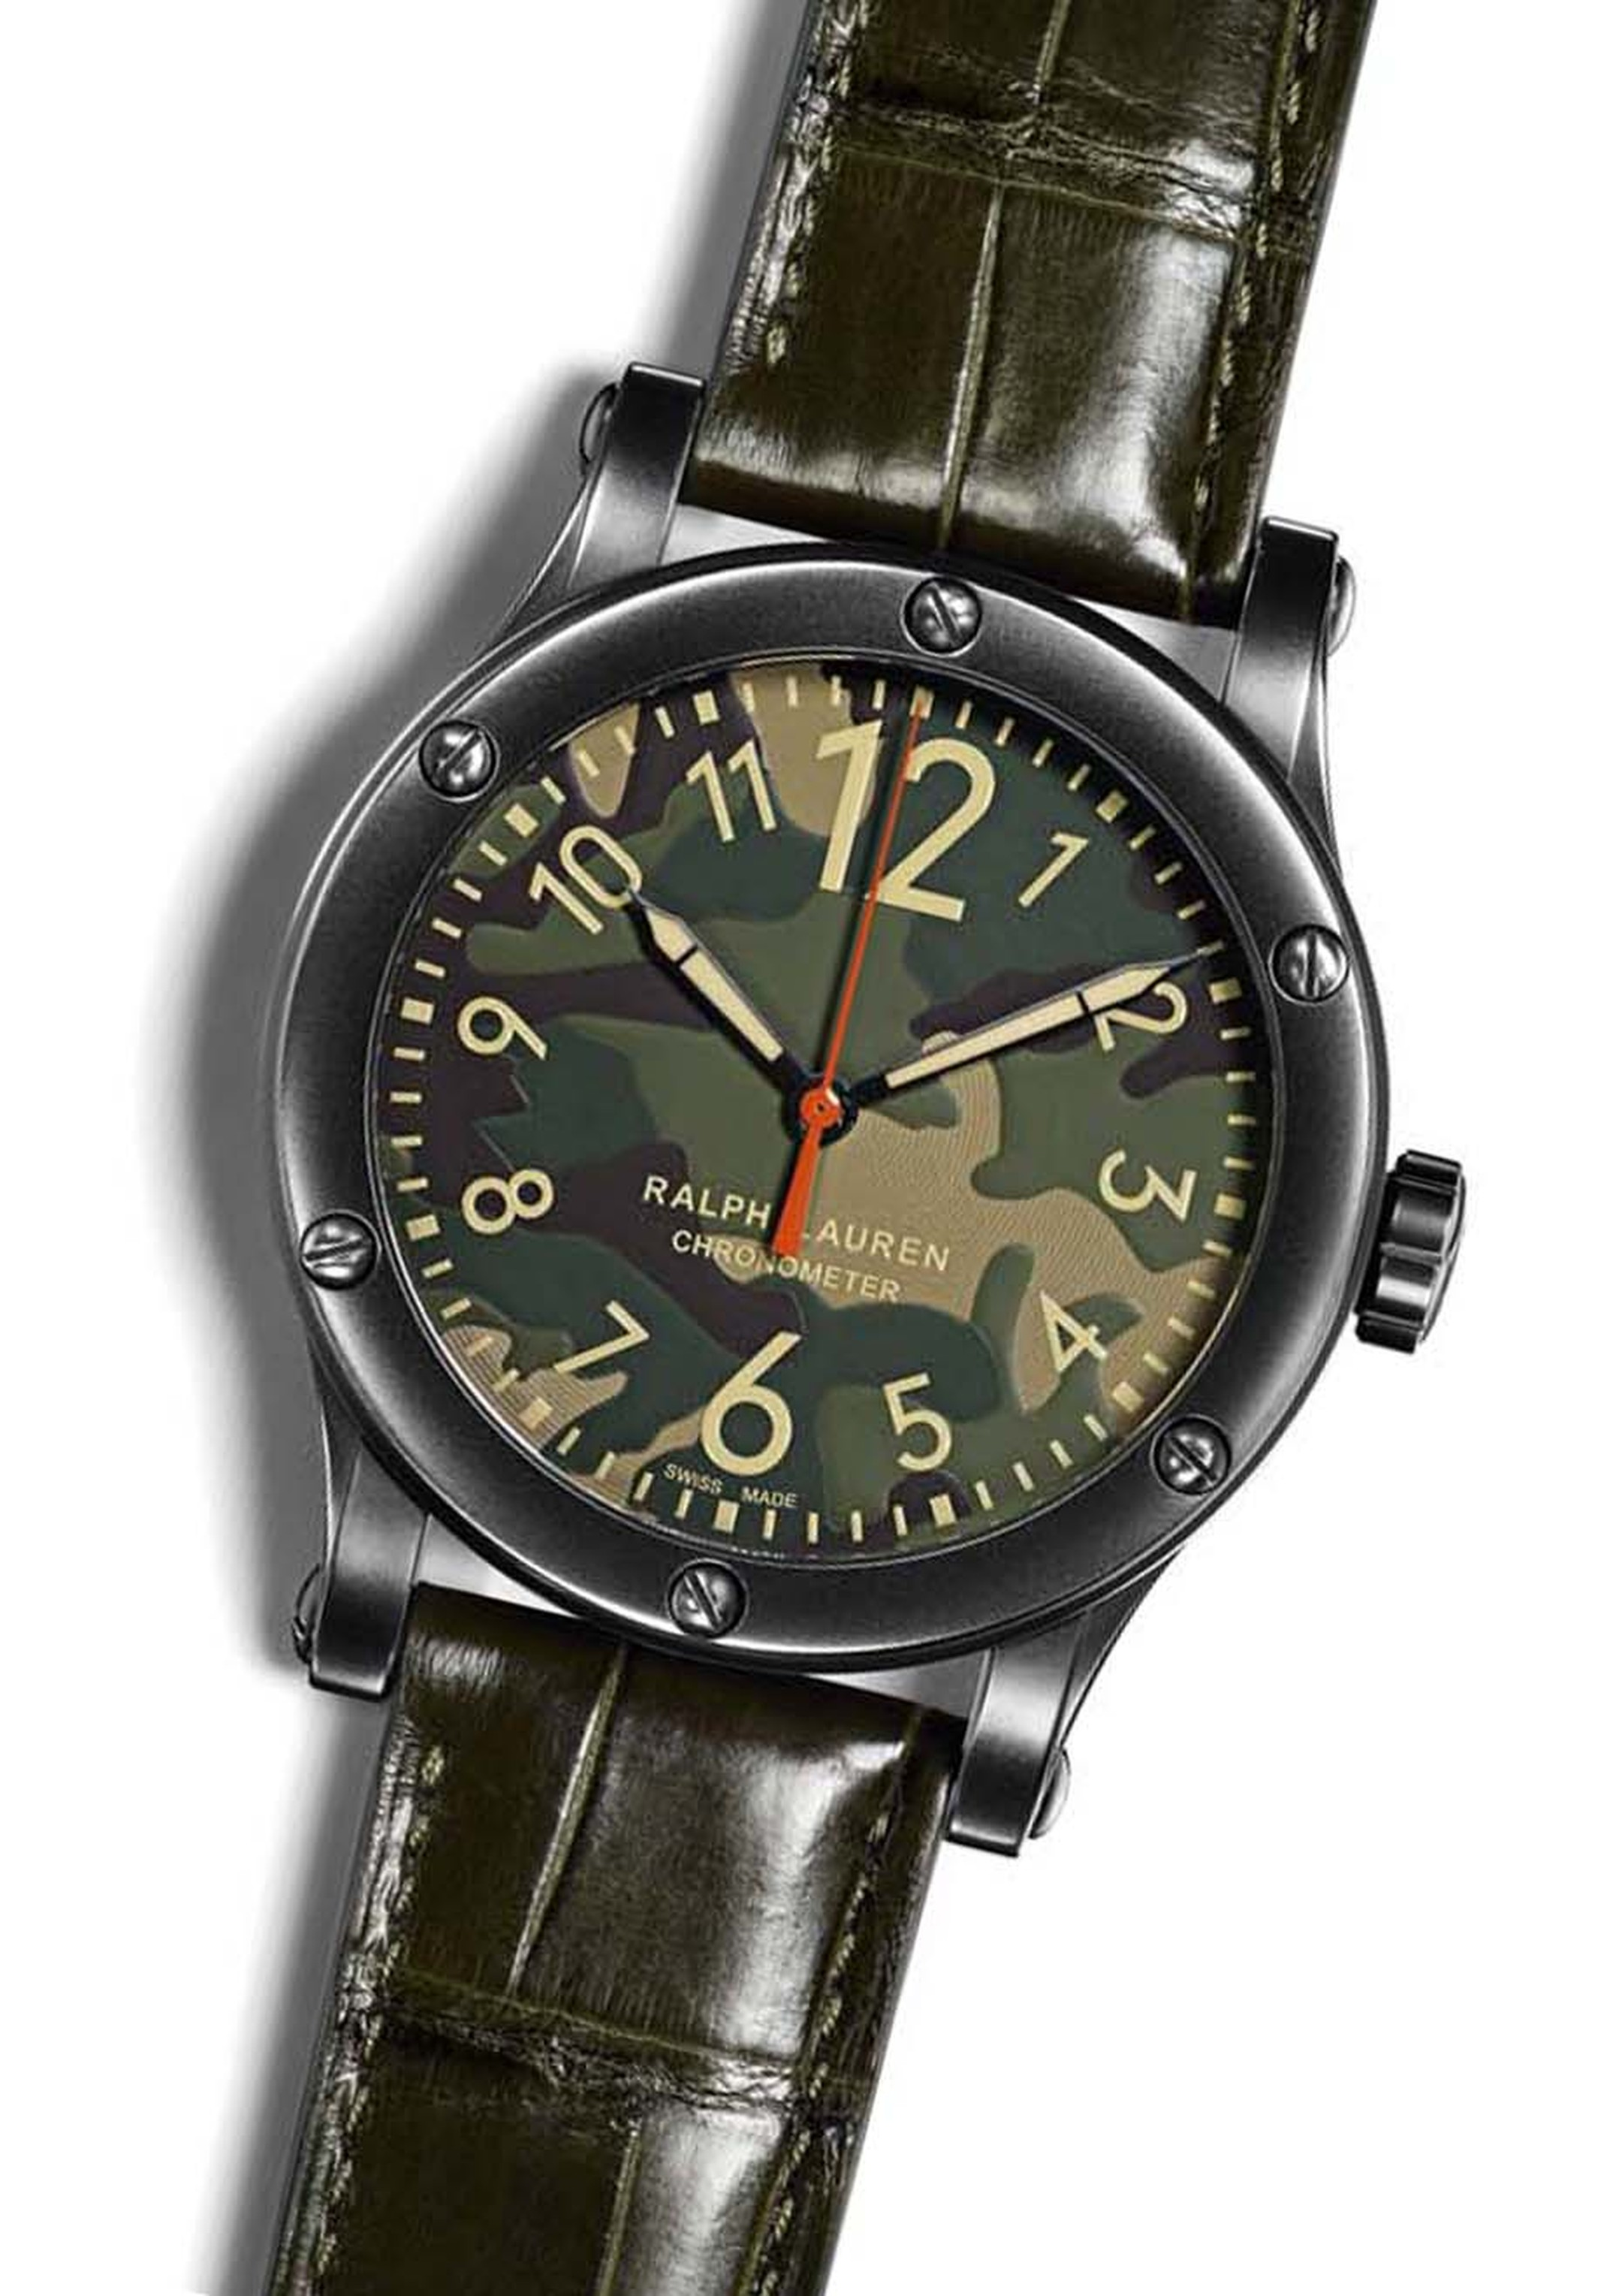 Ralph Lauren watches RL67 Safari Chronometer. Like its brother with the khaki dial, the new camouflage dial watch is equipped with automatic calibre RL300-1, a Swiss COSC-certified chronometer movement water-resistant to 100 metres.